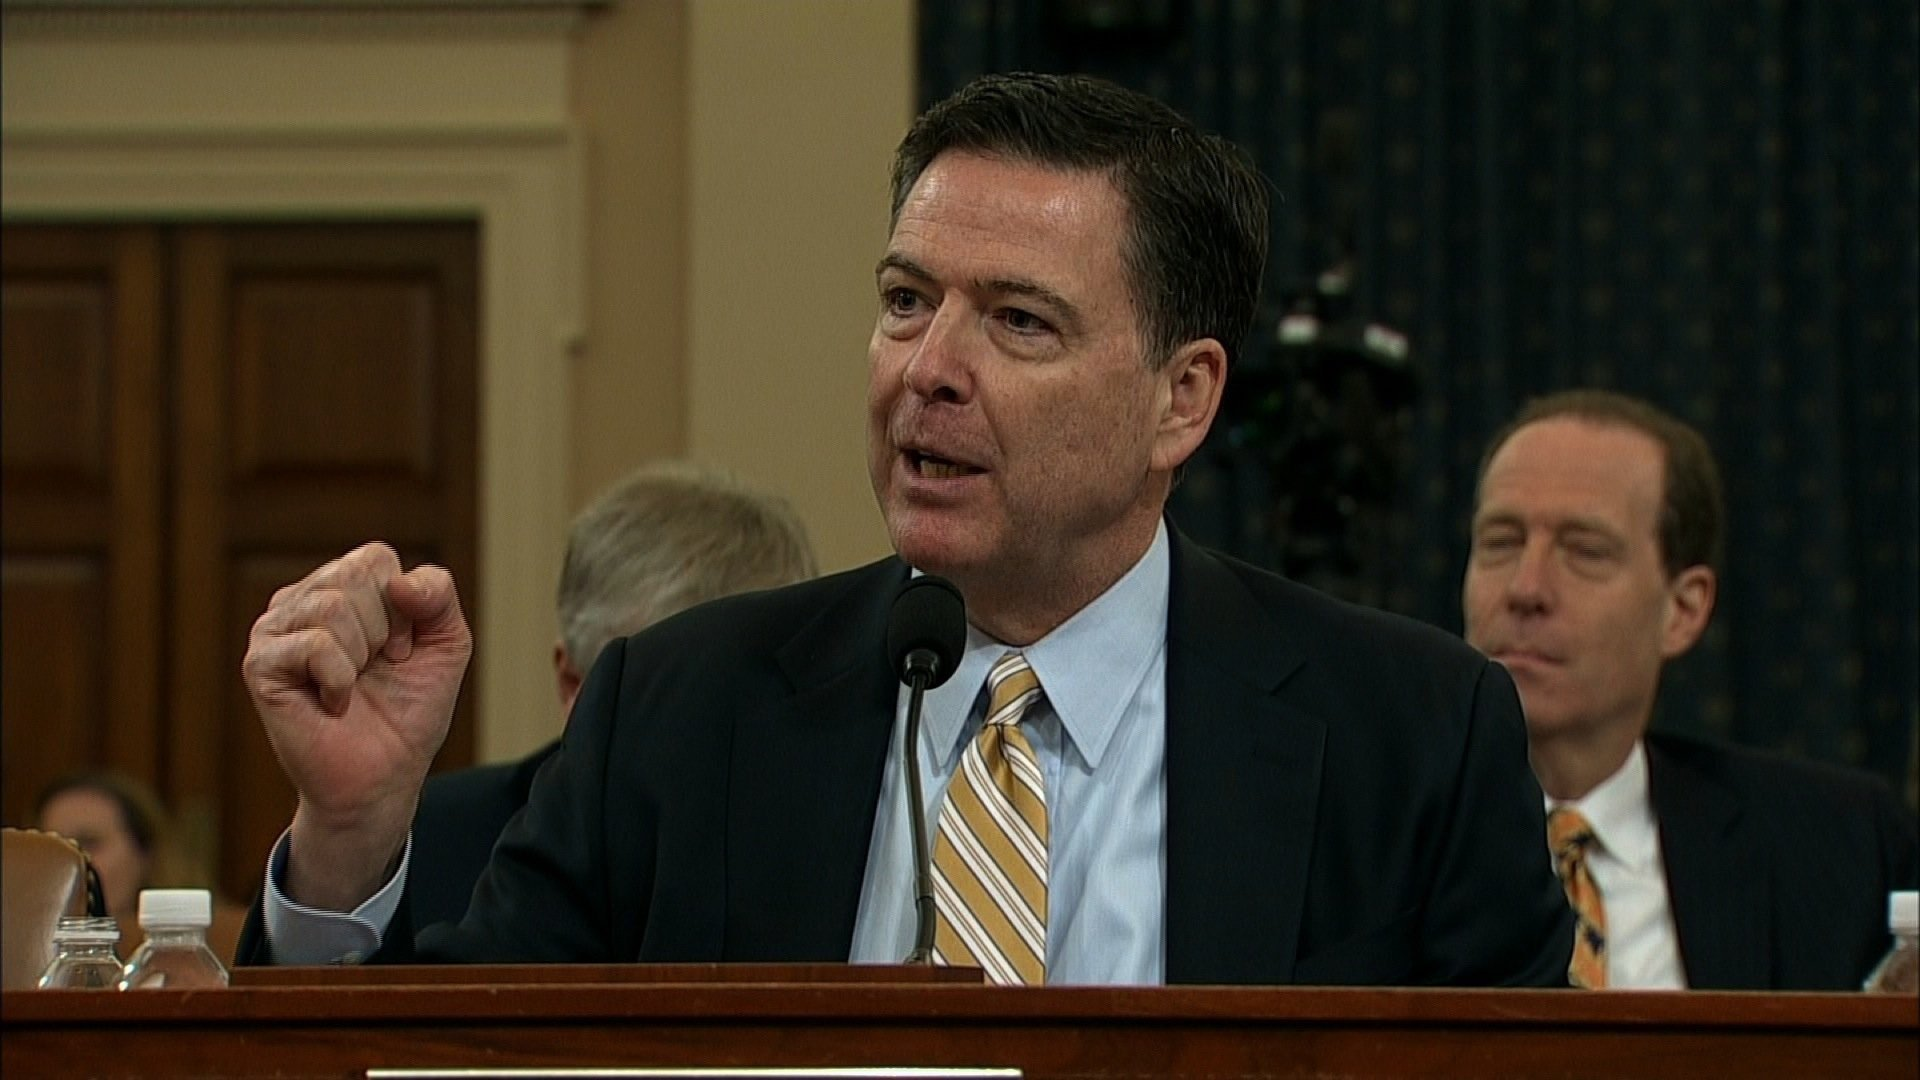 Comey kicks off testimony by straight up calling Trump a liar